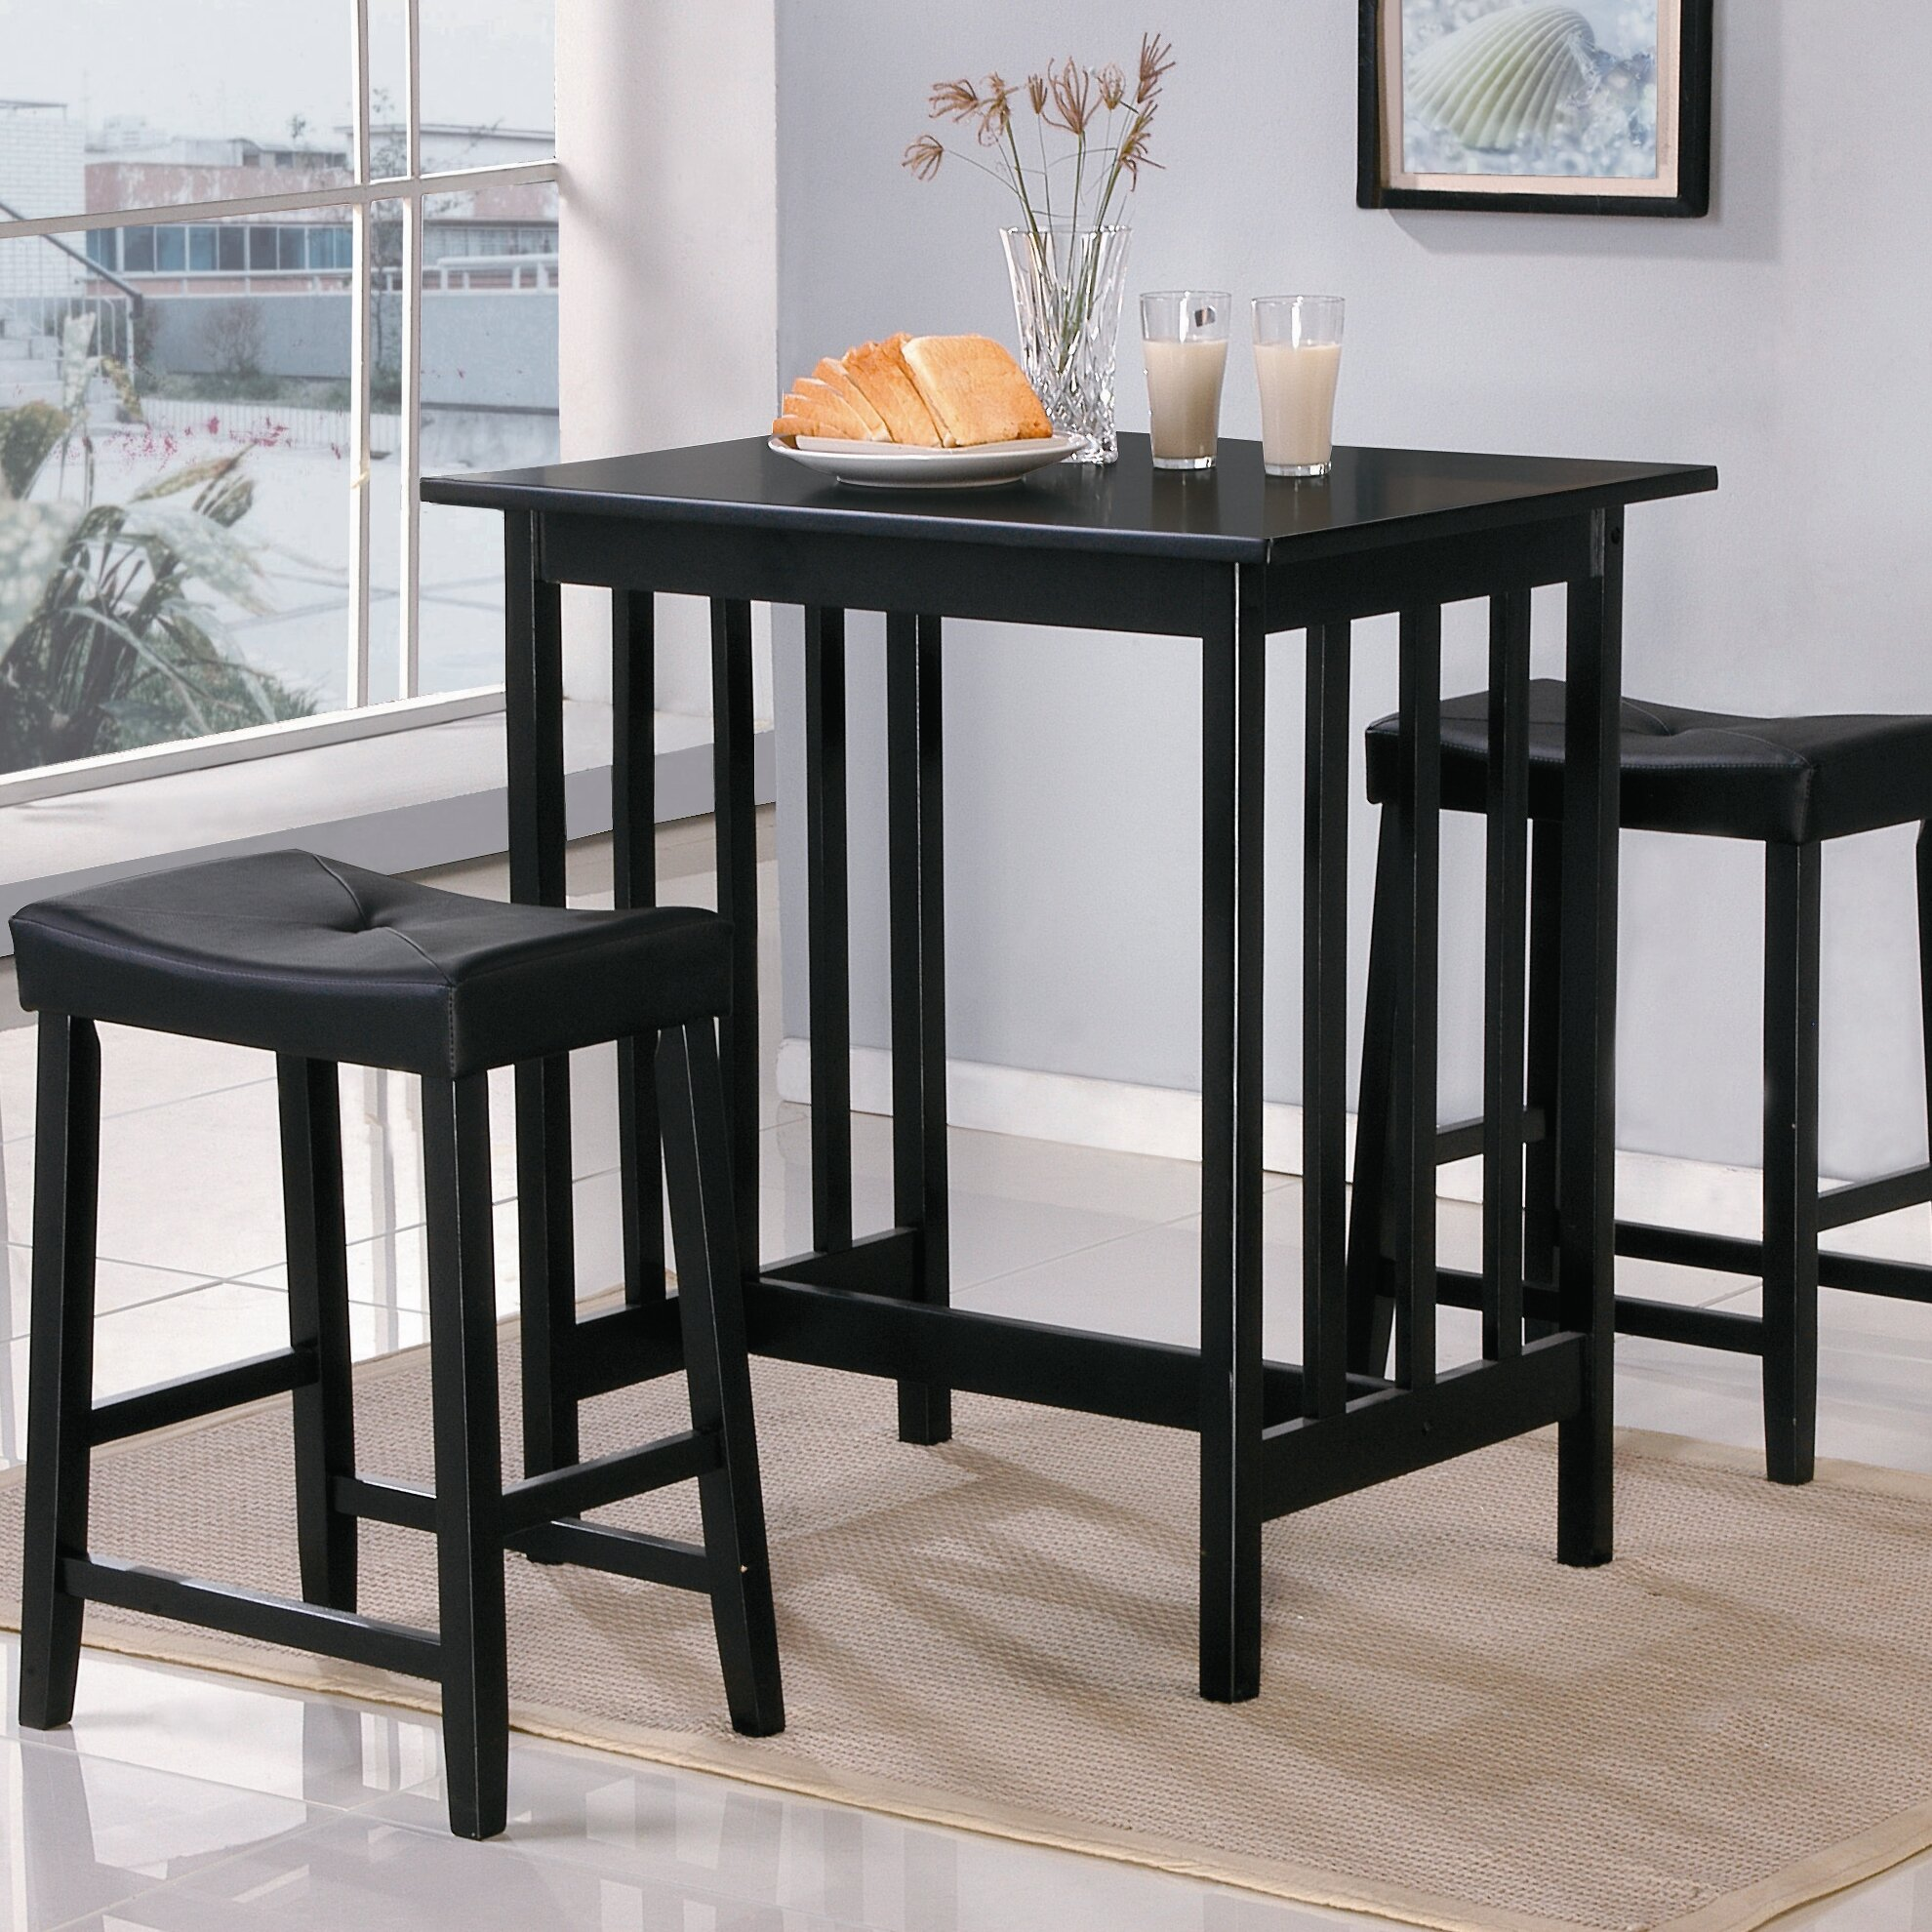 Woodhaven hill scottsdale 3 piece dining set reviews for 3 piece dining room